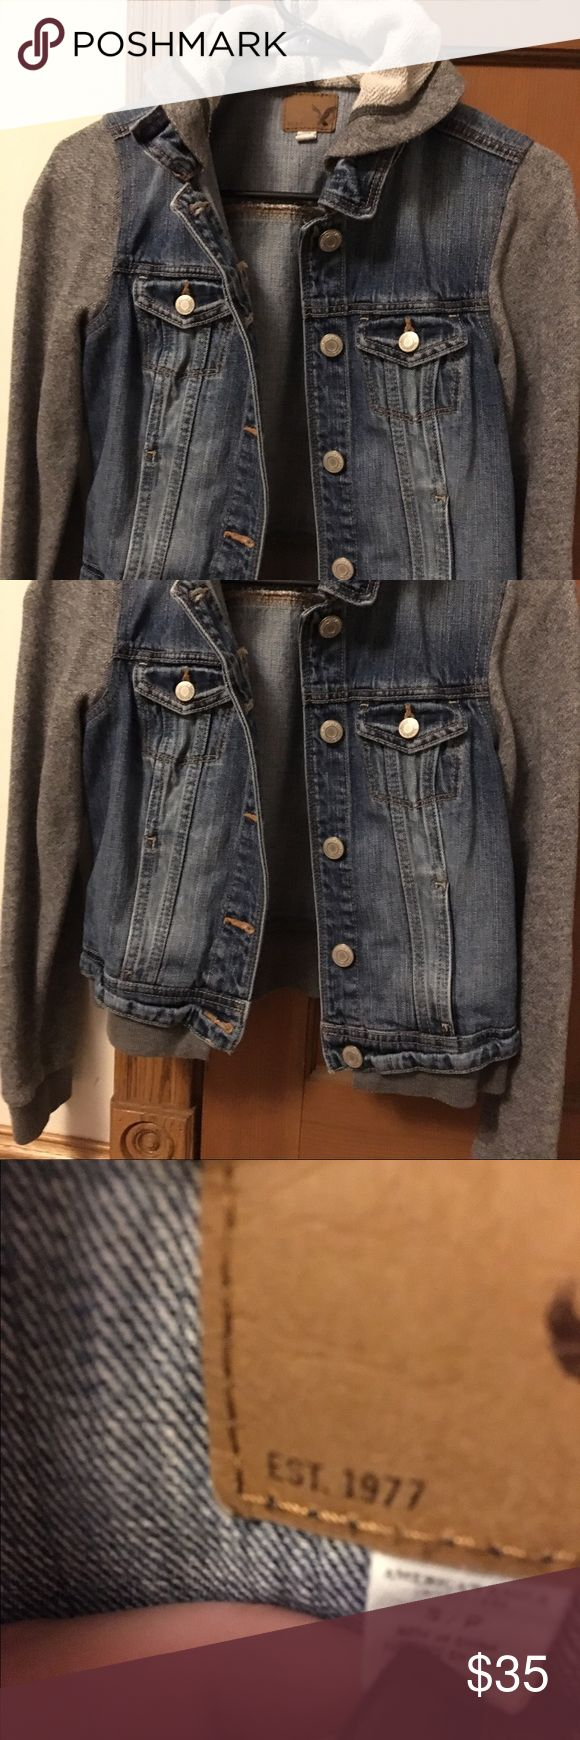 👖 American Eagle Jacket 👖 Excellent used condition with a ton of life left! Too small for me. 😩 Fits a small/xs. American Eagle Outfitters Jackets & Coats Jean Jackets